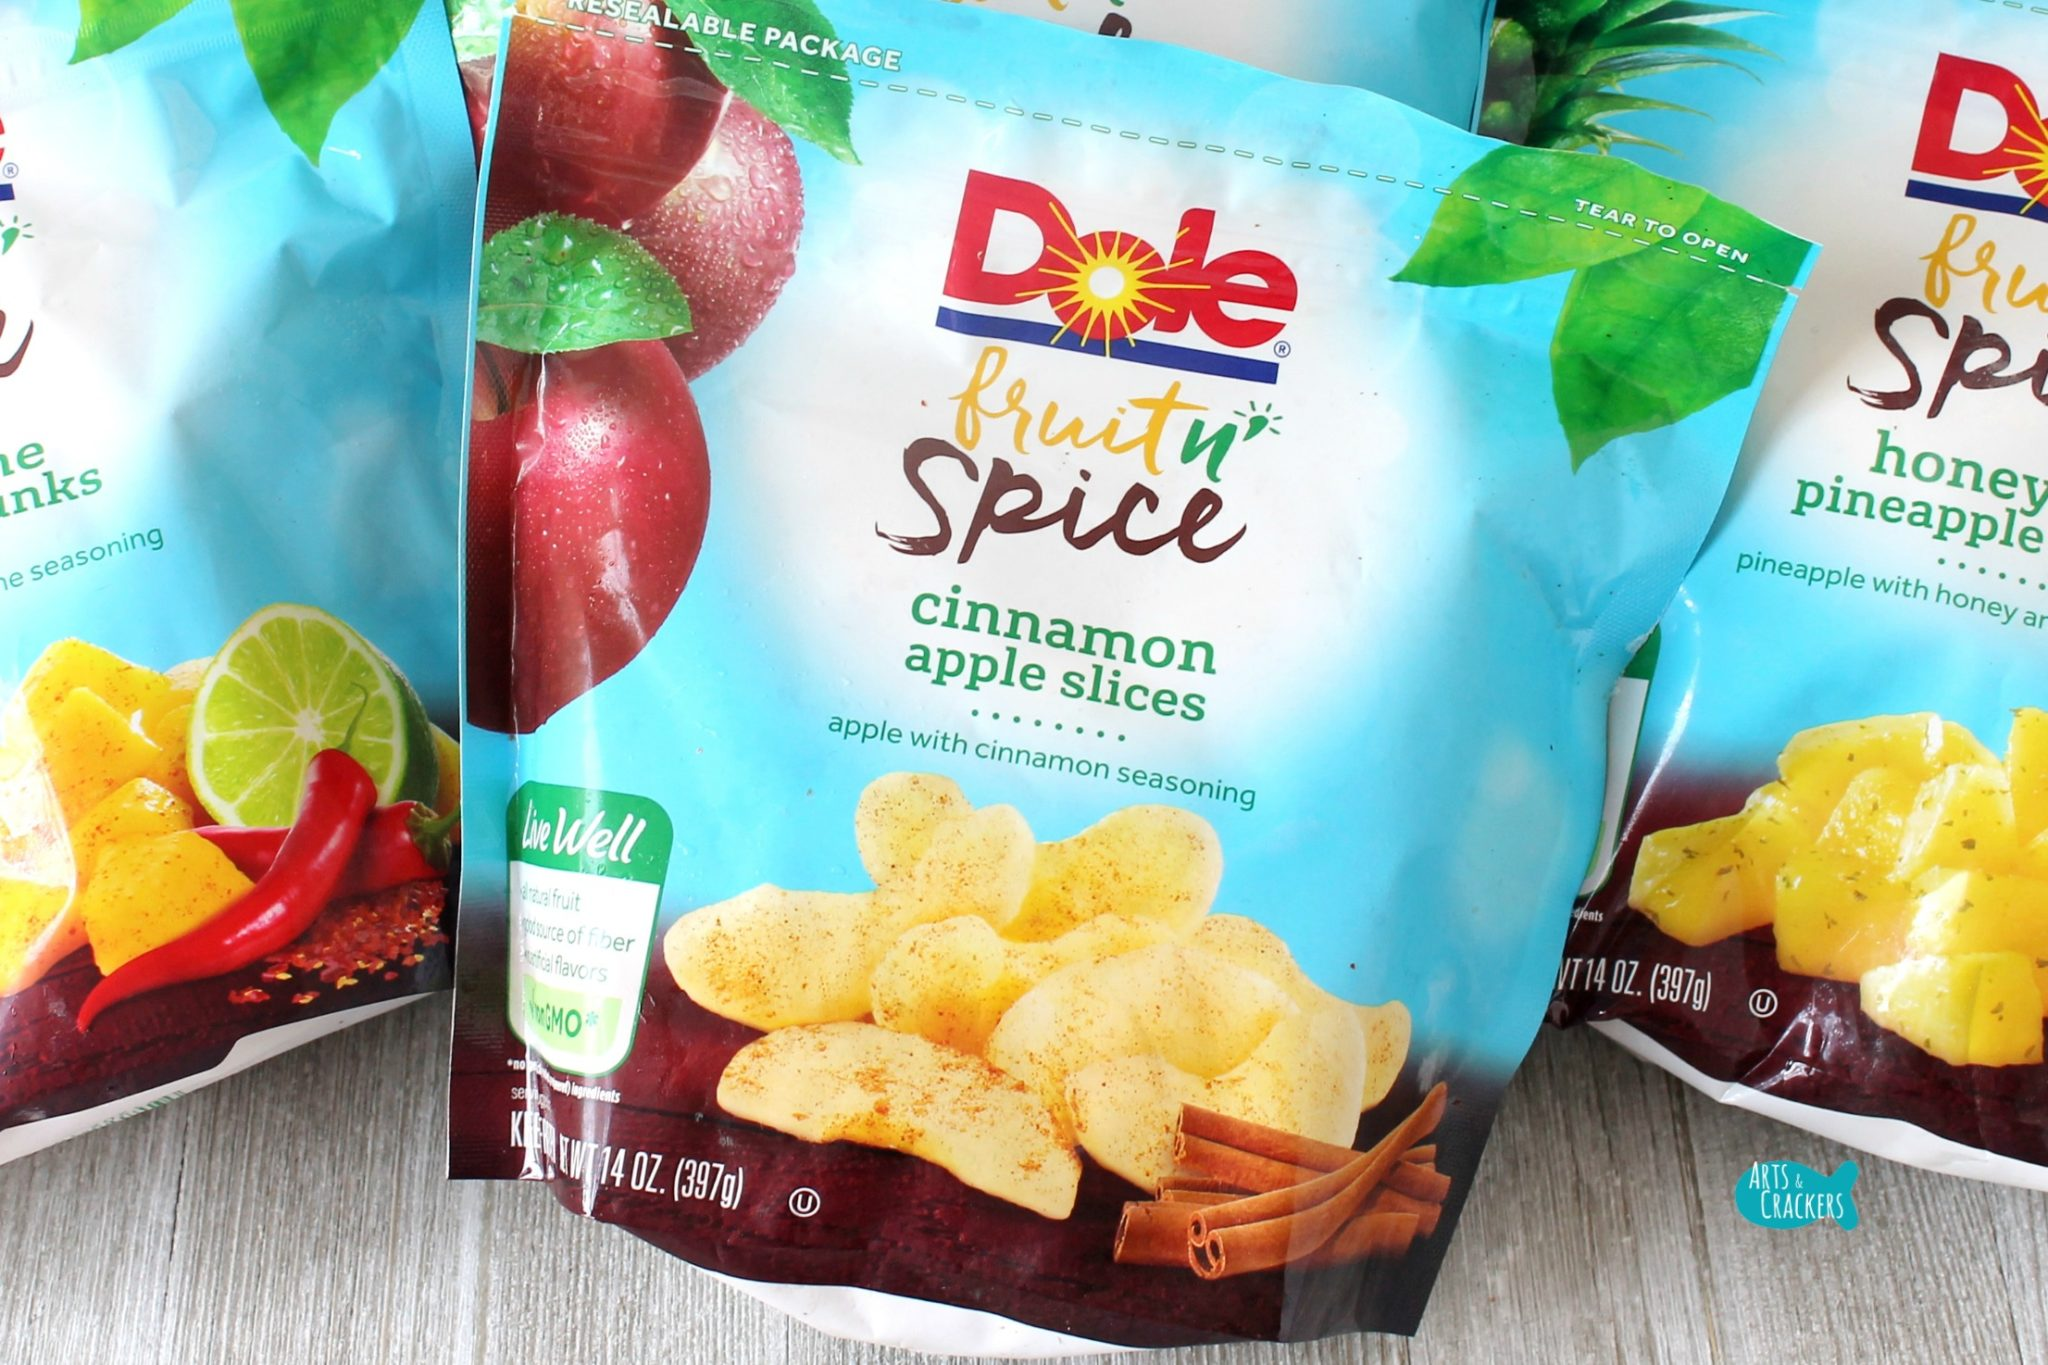 DOLE Fruit n' Spice Apple